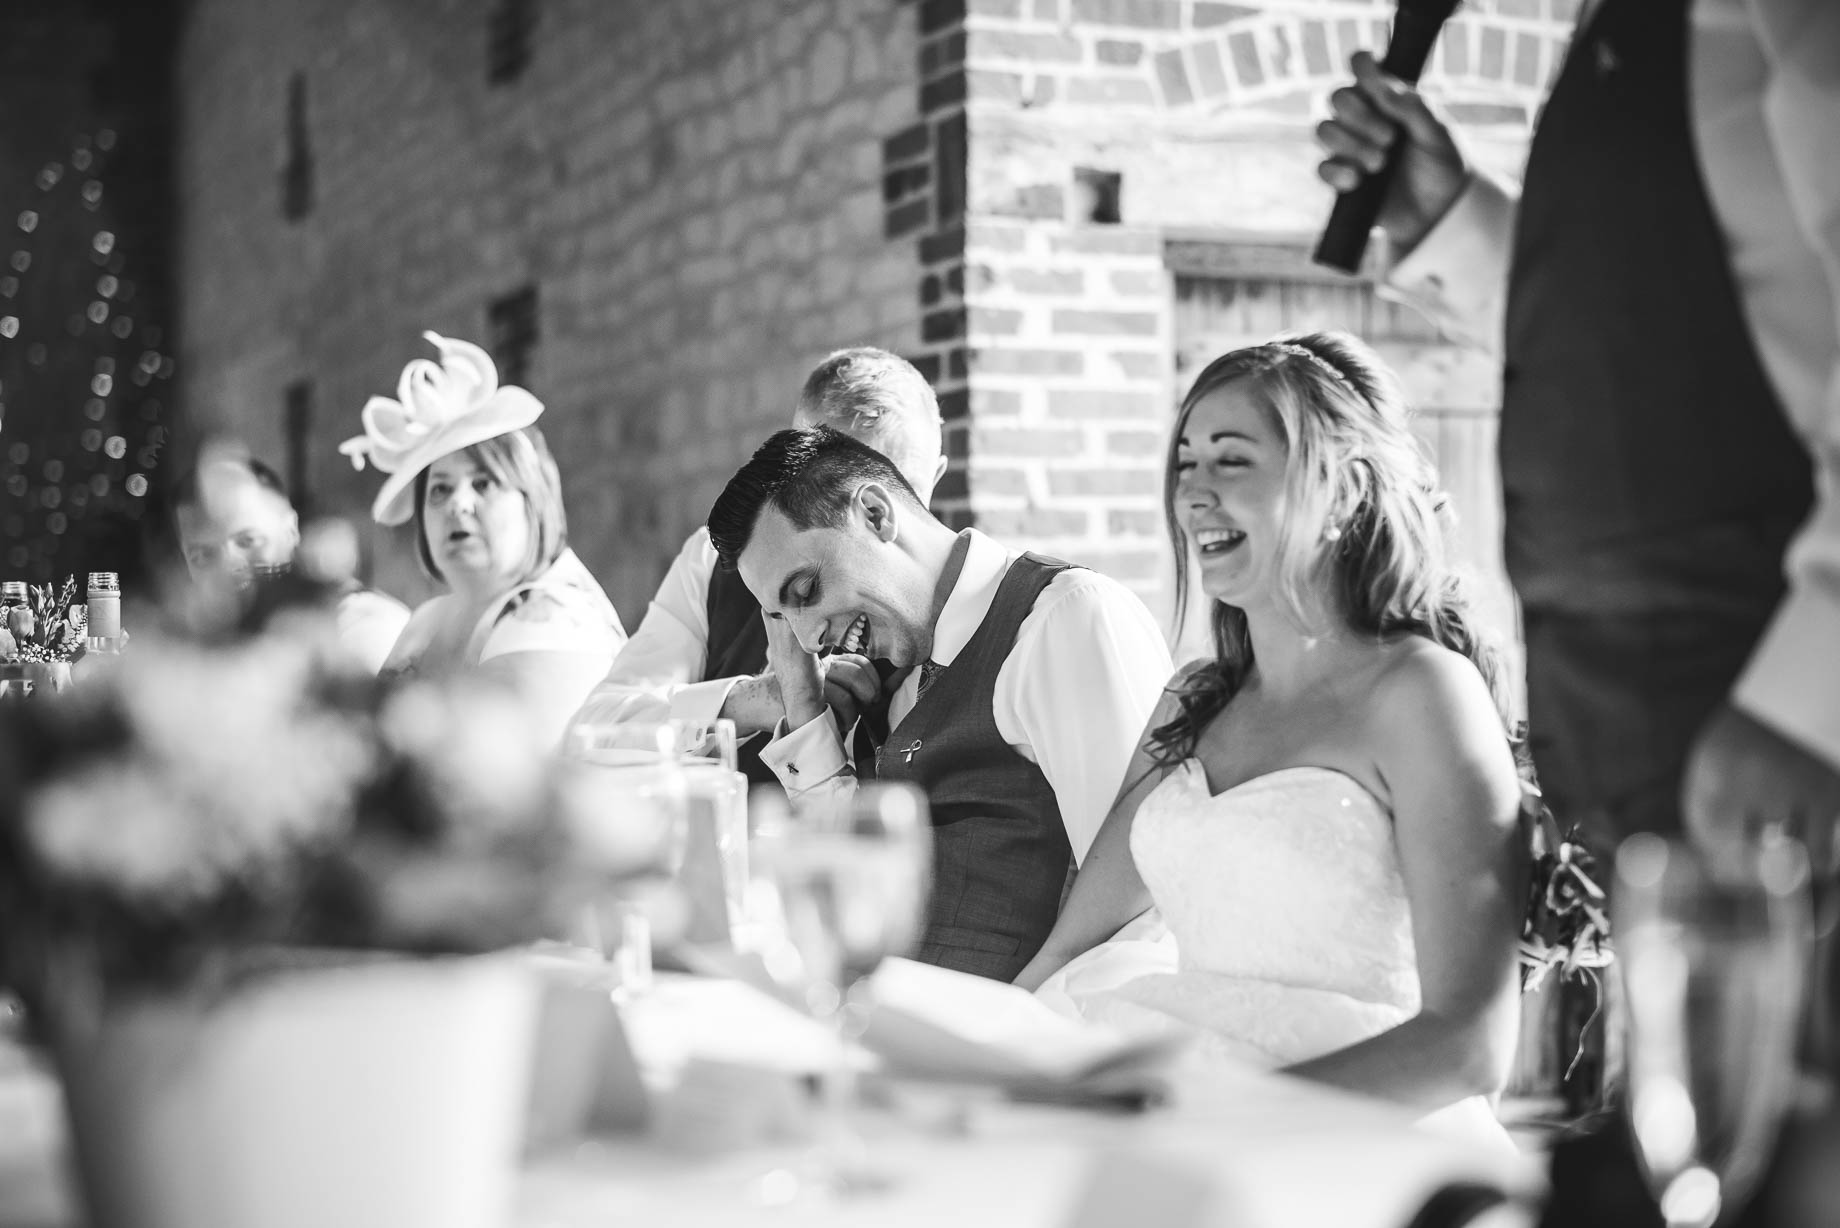 Bury Court Barn wedding photography - Guy Collier - Kirsty and Lewis (123 of 150)